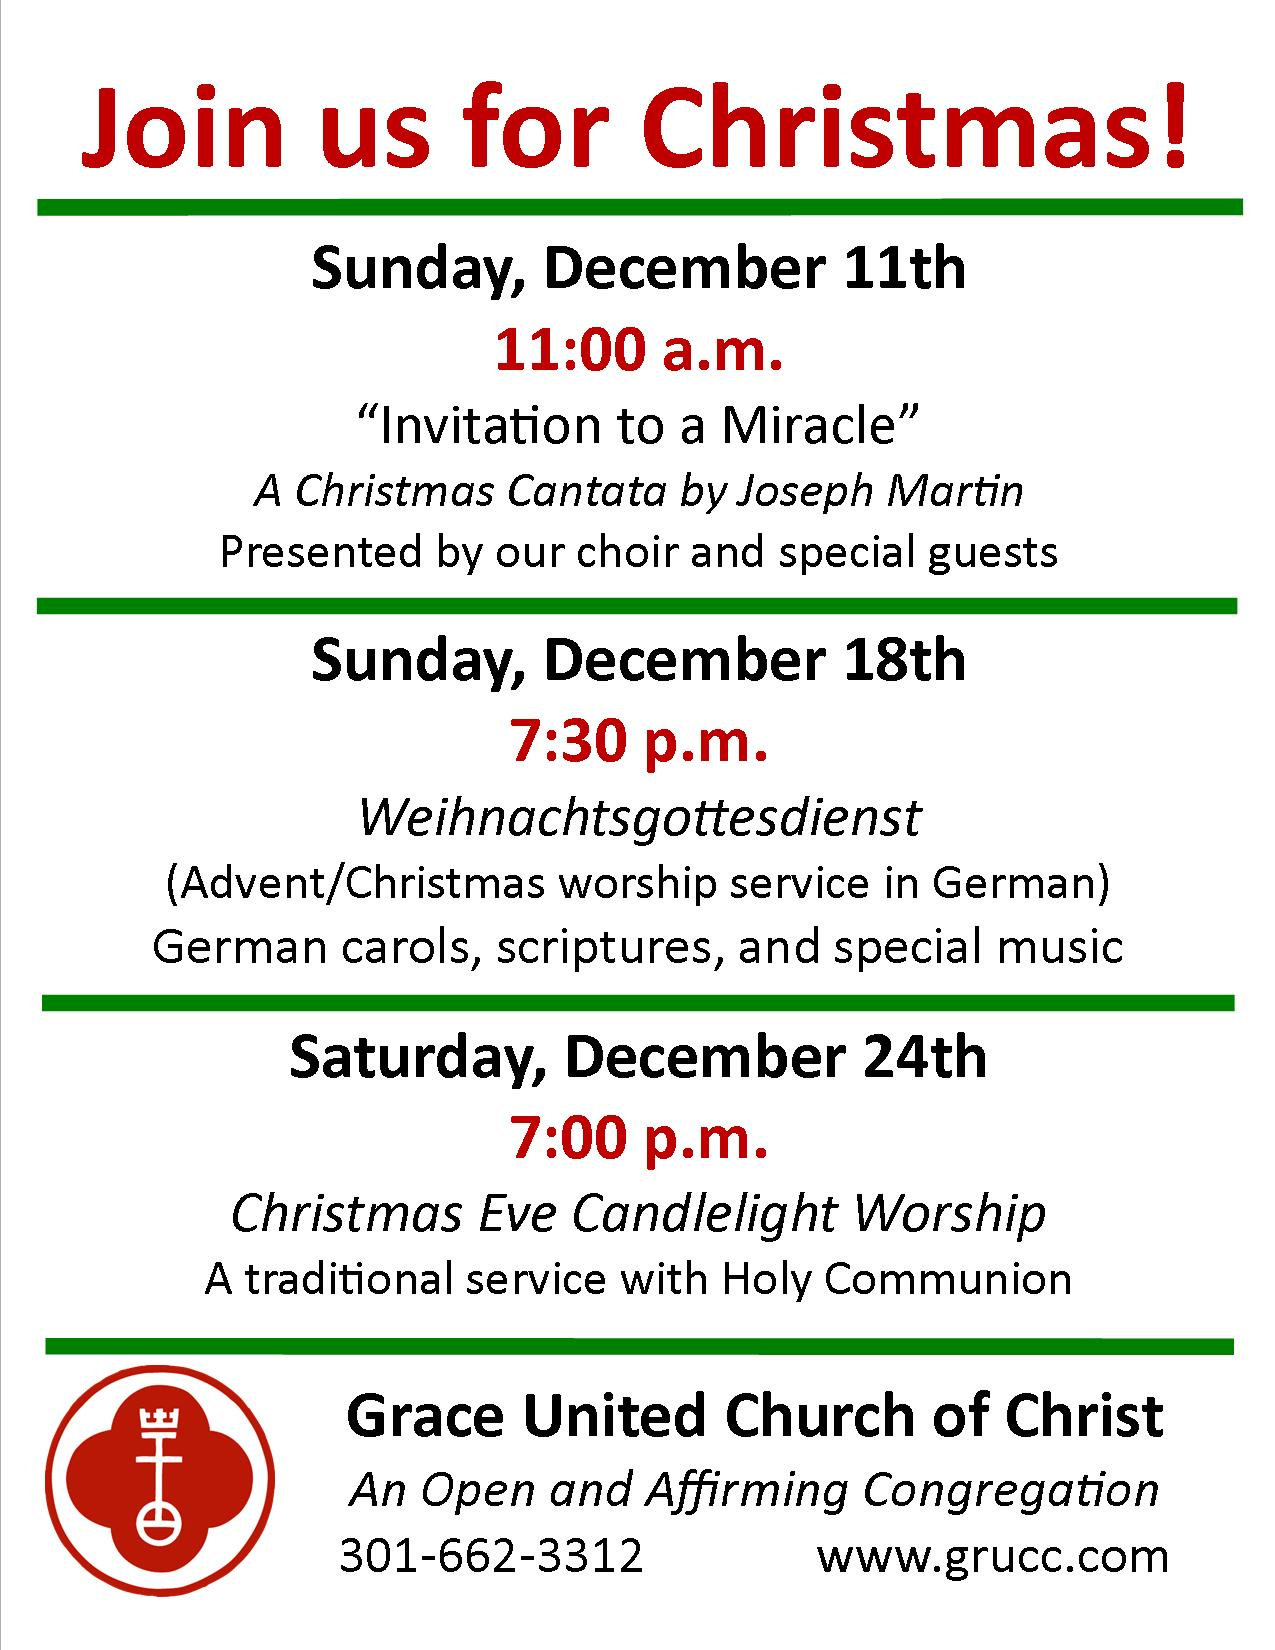 2016 Christmas and Cantata flyer